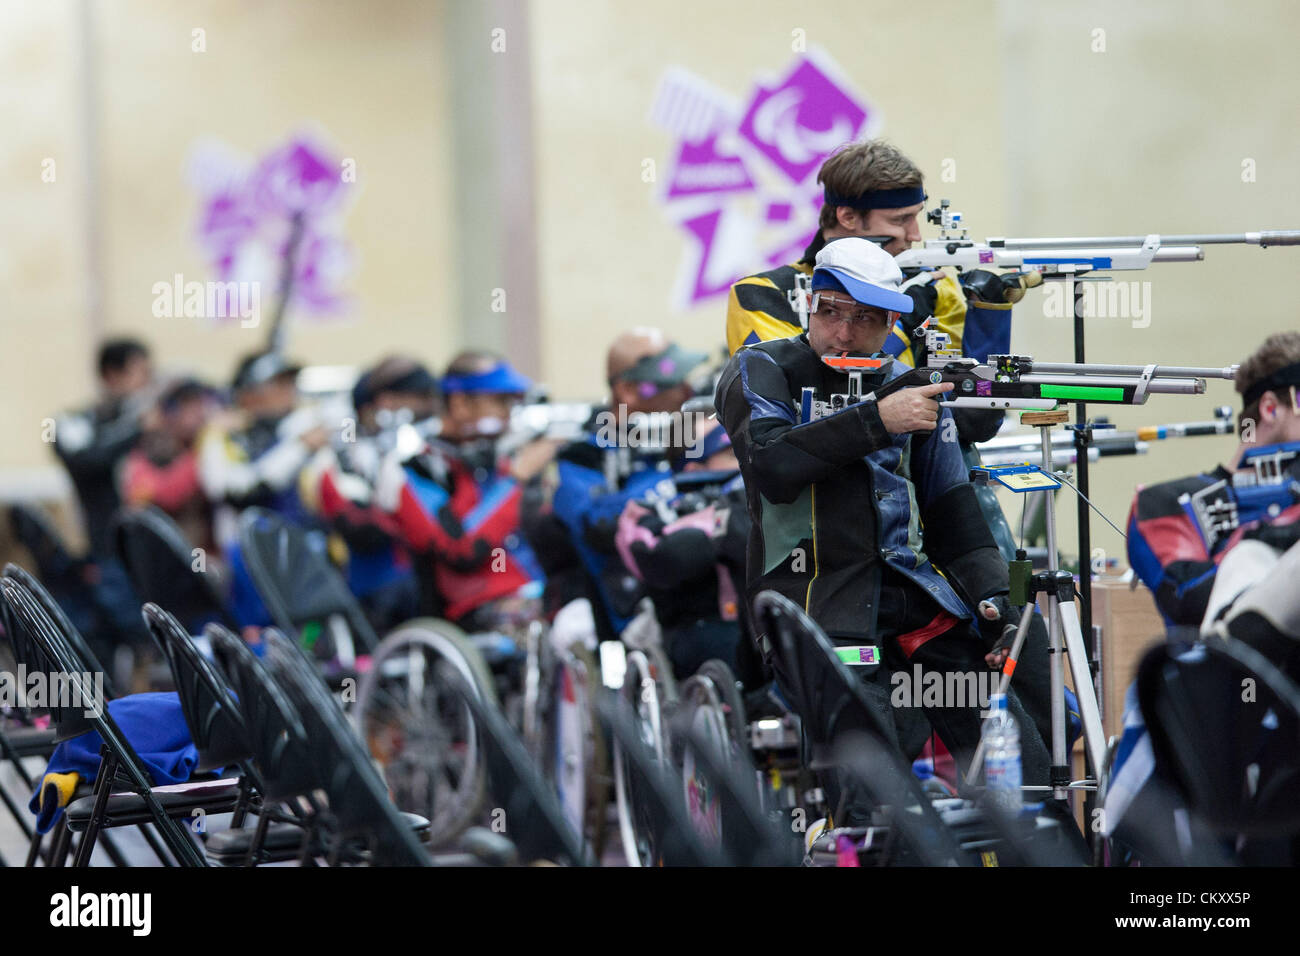 31.08.2012 London, England. in action during the Men's R1-10m Air Rifle Standing-SH1 on Day 2 of the Paralympic - Stock Image